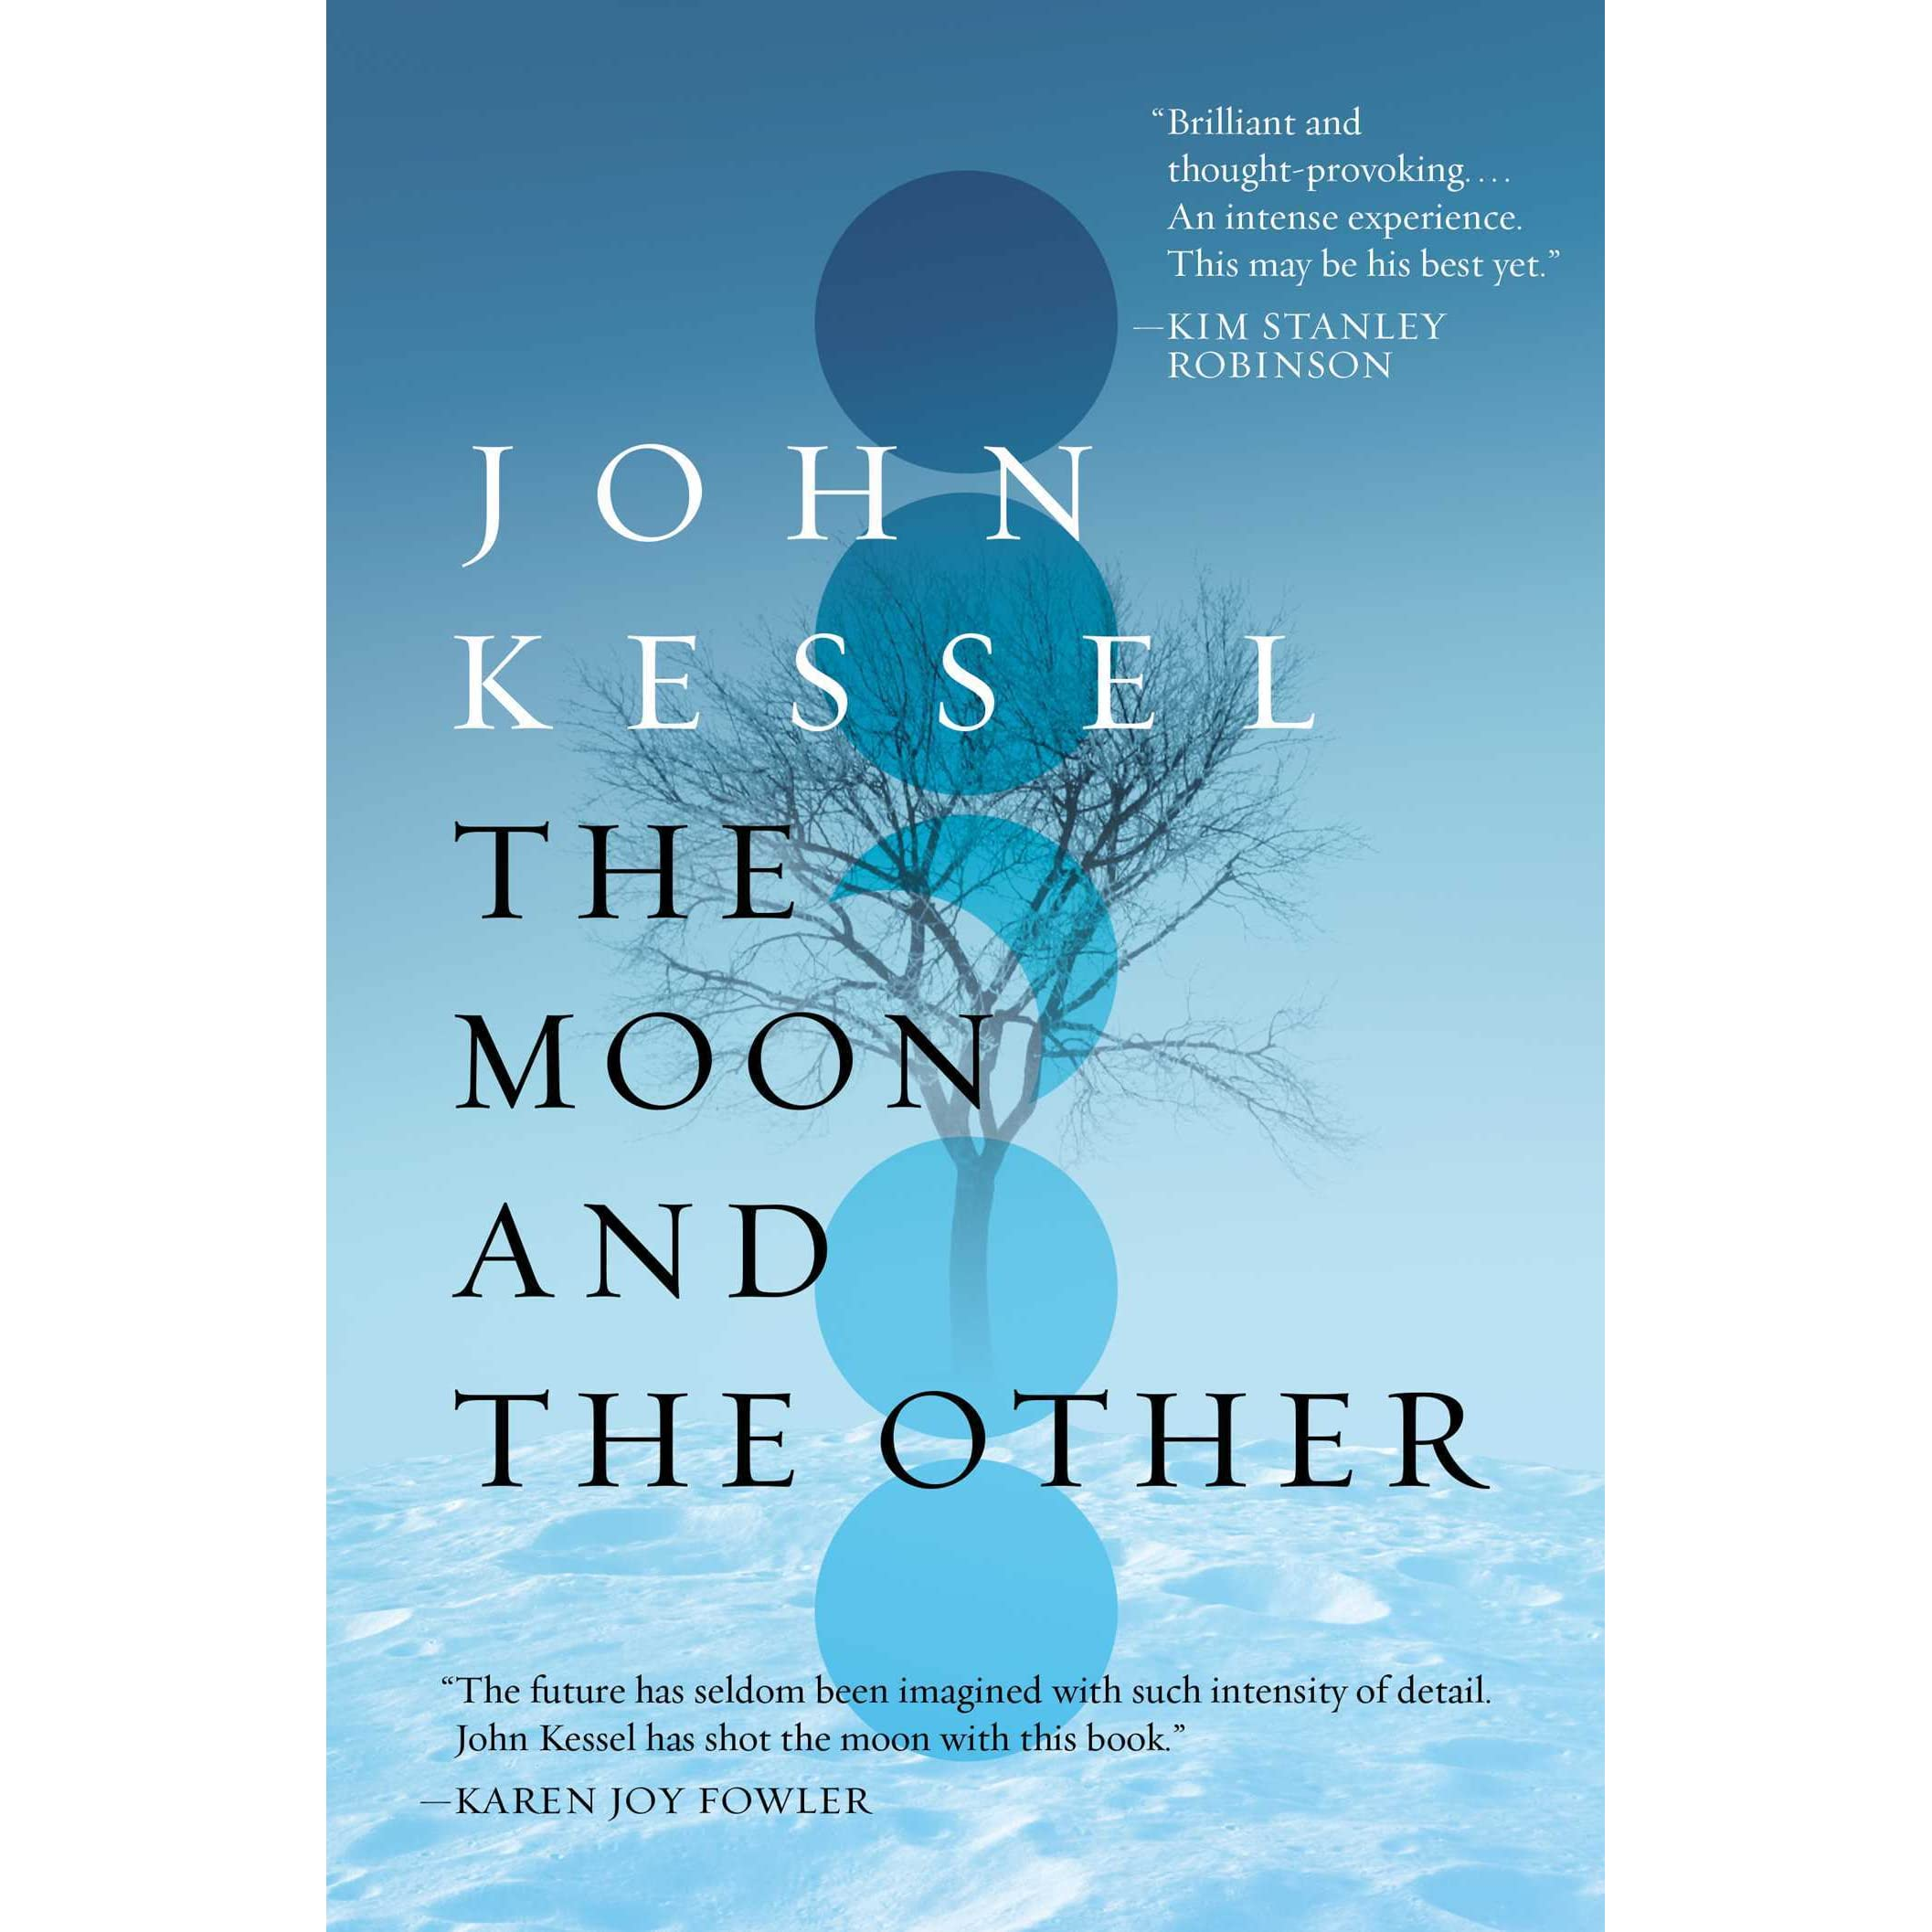 The Moon and the Other by John Kessel